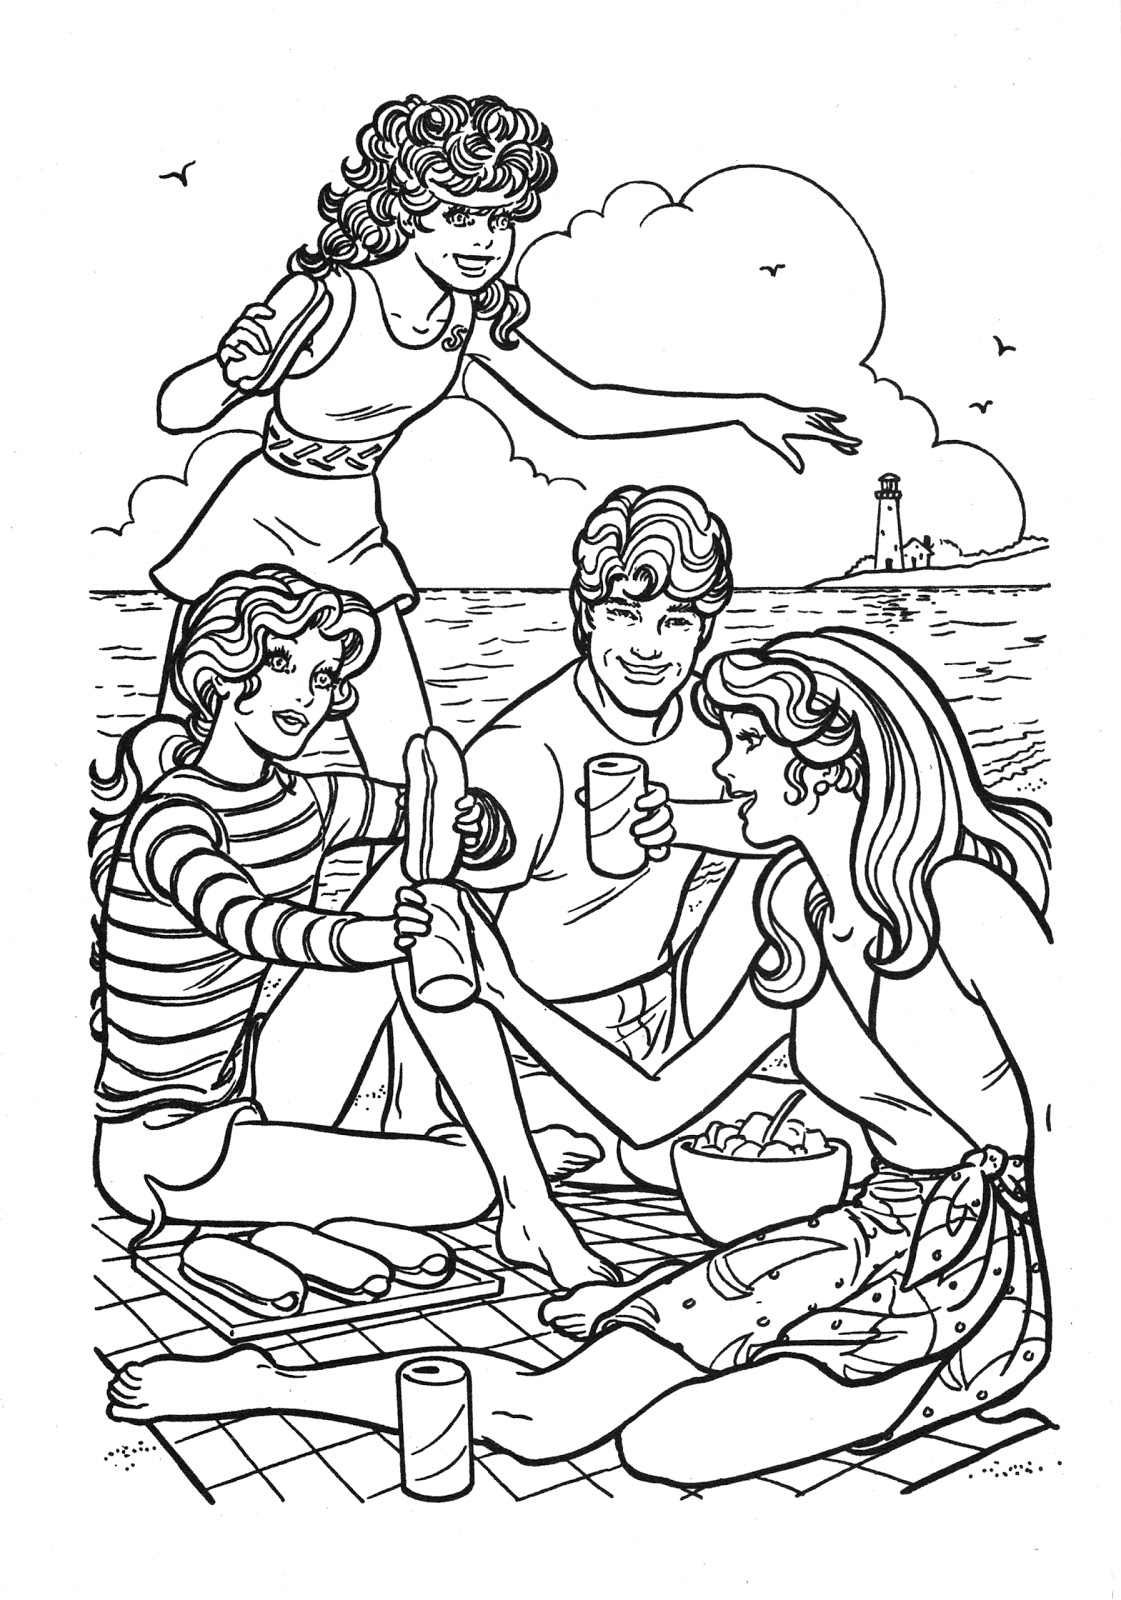 BARBIE COLORING PAGES: KEN AND BARBIE - MATTEL'S PERFECT ...